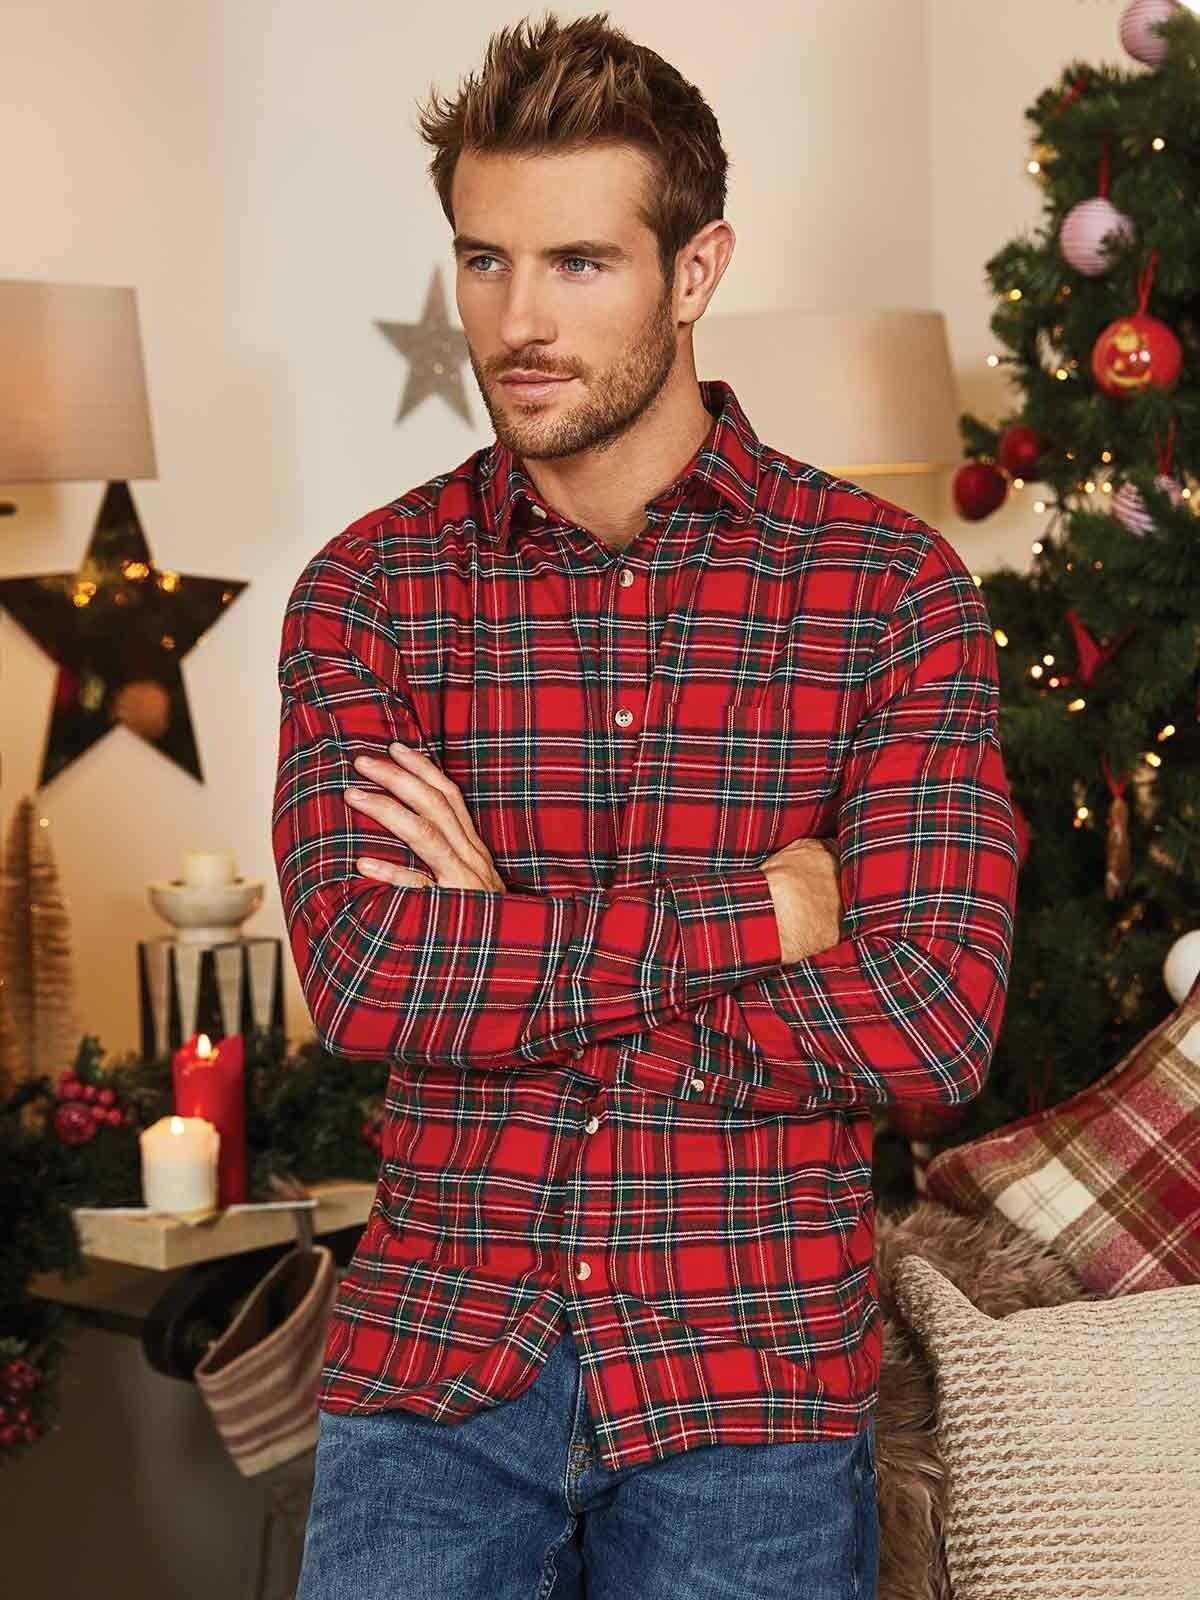 A flannel shirt worn with smart jeans is the perfect attire for classy NYE cocktails..